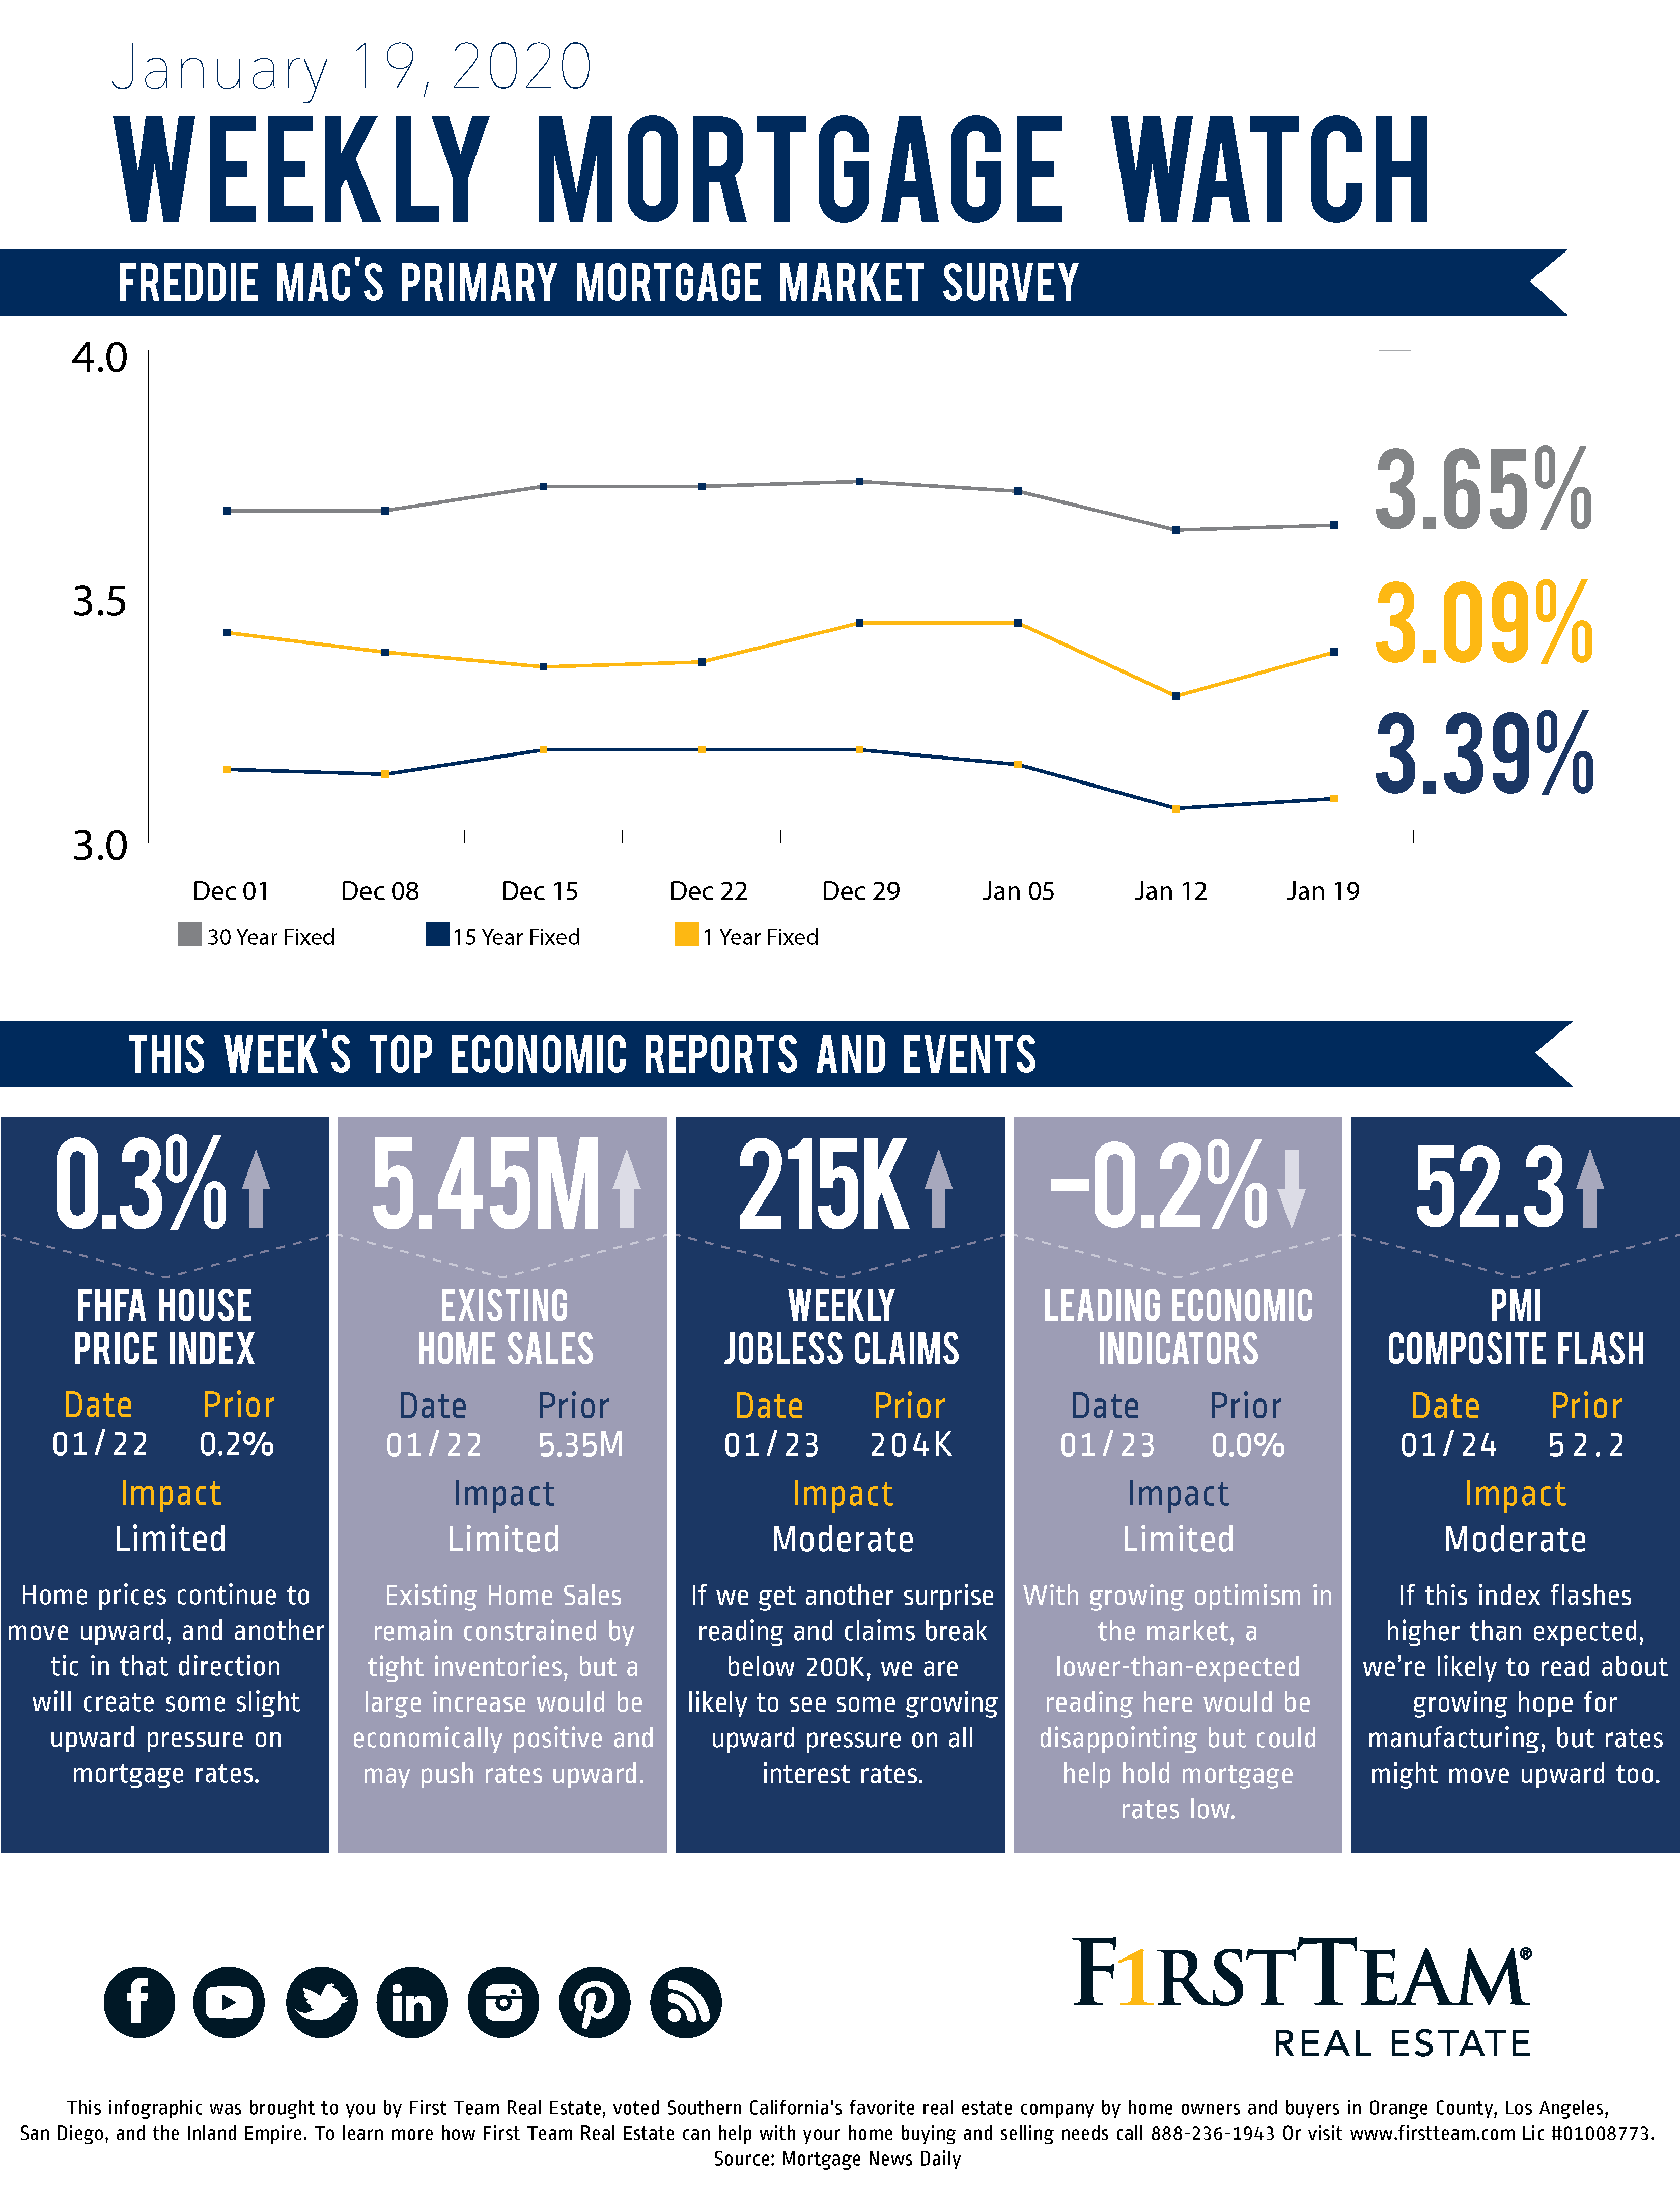 Mortgage Watch for 1.19.20 infographic showing trends over the past 8 weeks